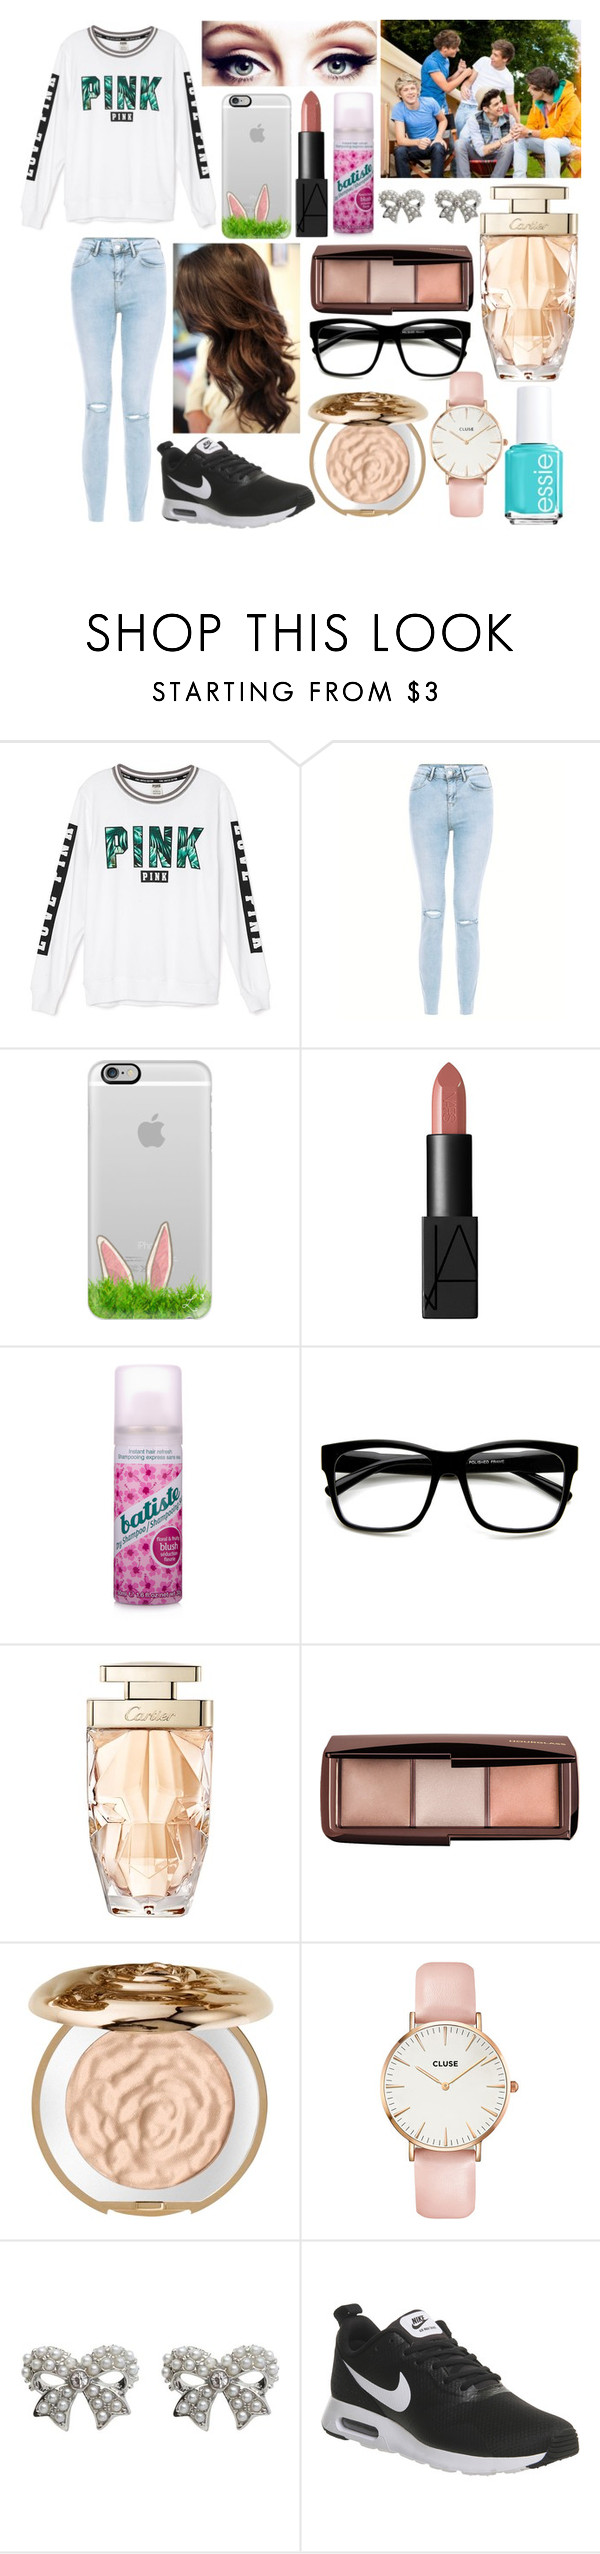 """""""Casualty Love"""" by qwerty-16-polyvore ❤ liked on Polyvore featuring Victoria's Secret, Casetify, NARS Cosmetics, Batiste, Retrò, Cartier, Hourglass Cosmetics, Chantecaille, CLUSE and M&Co"""